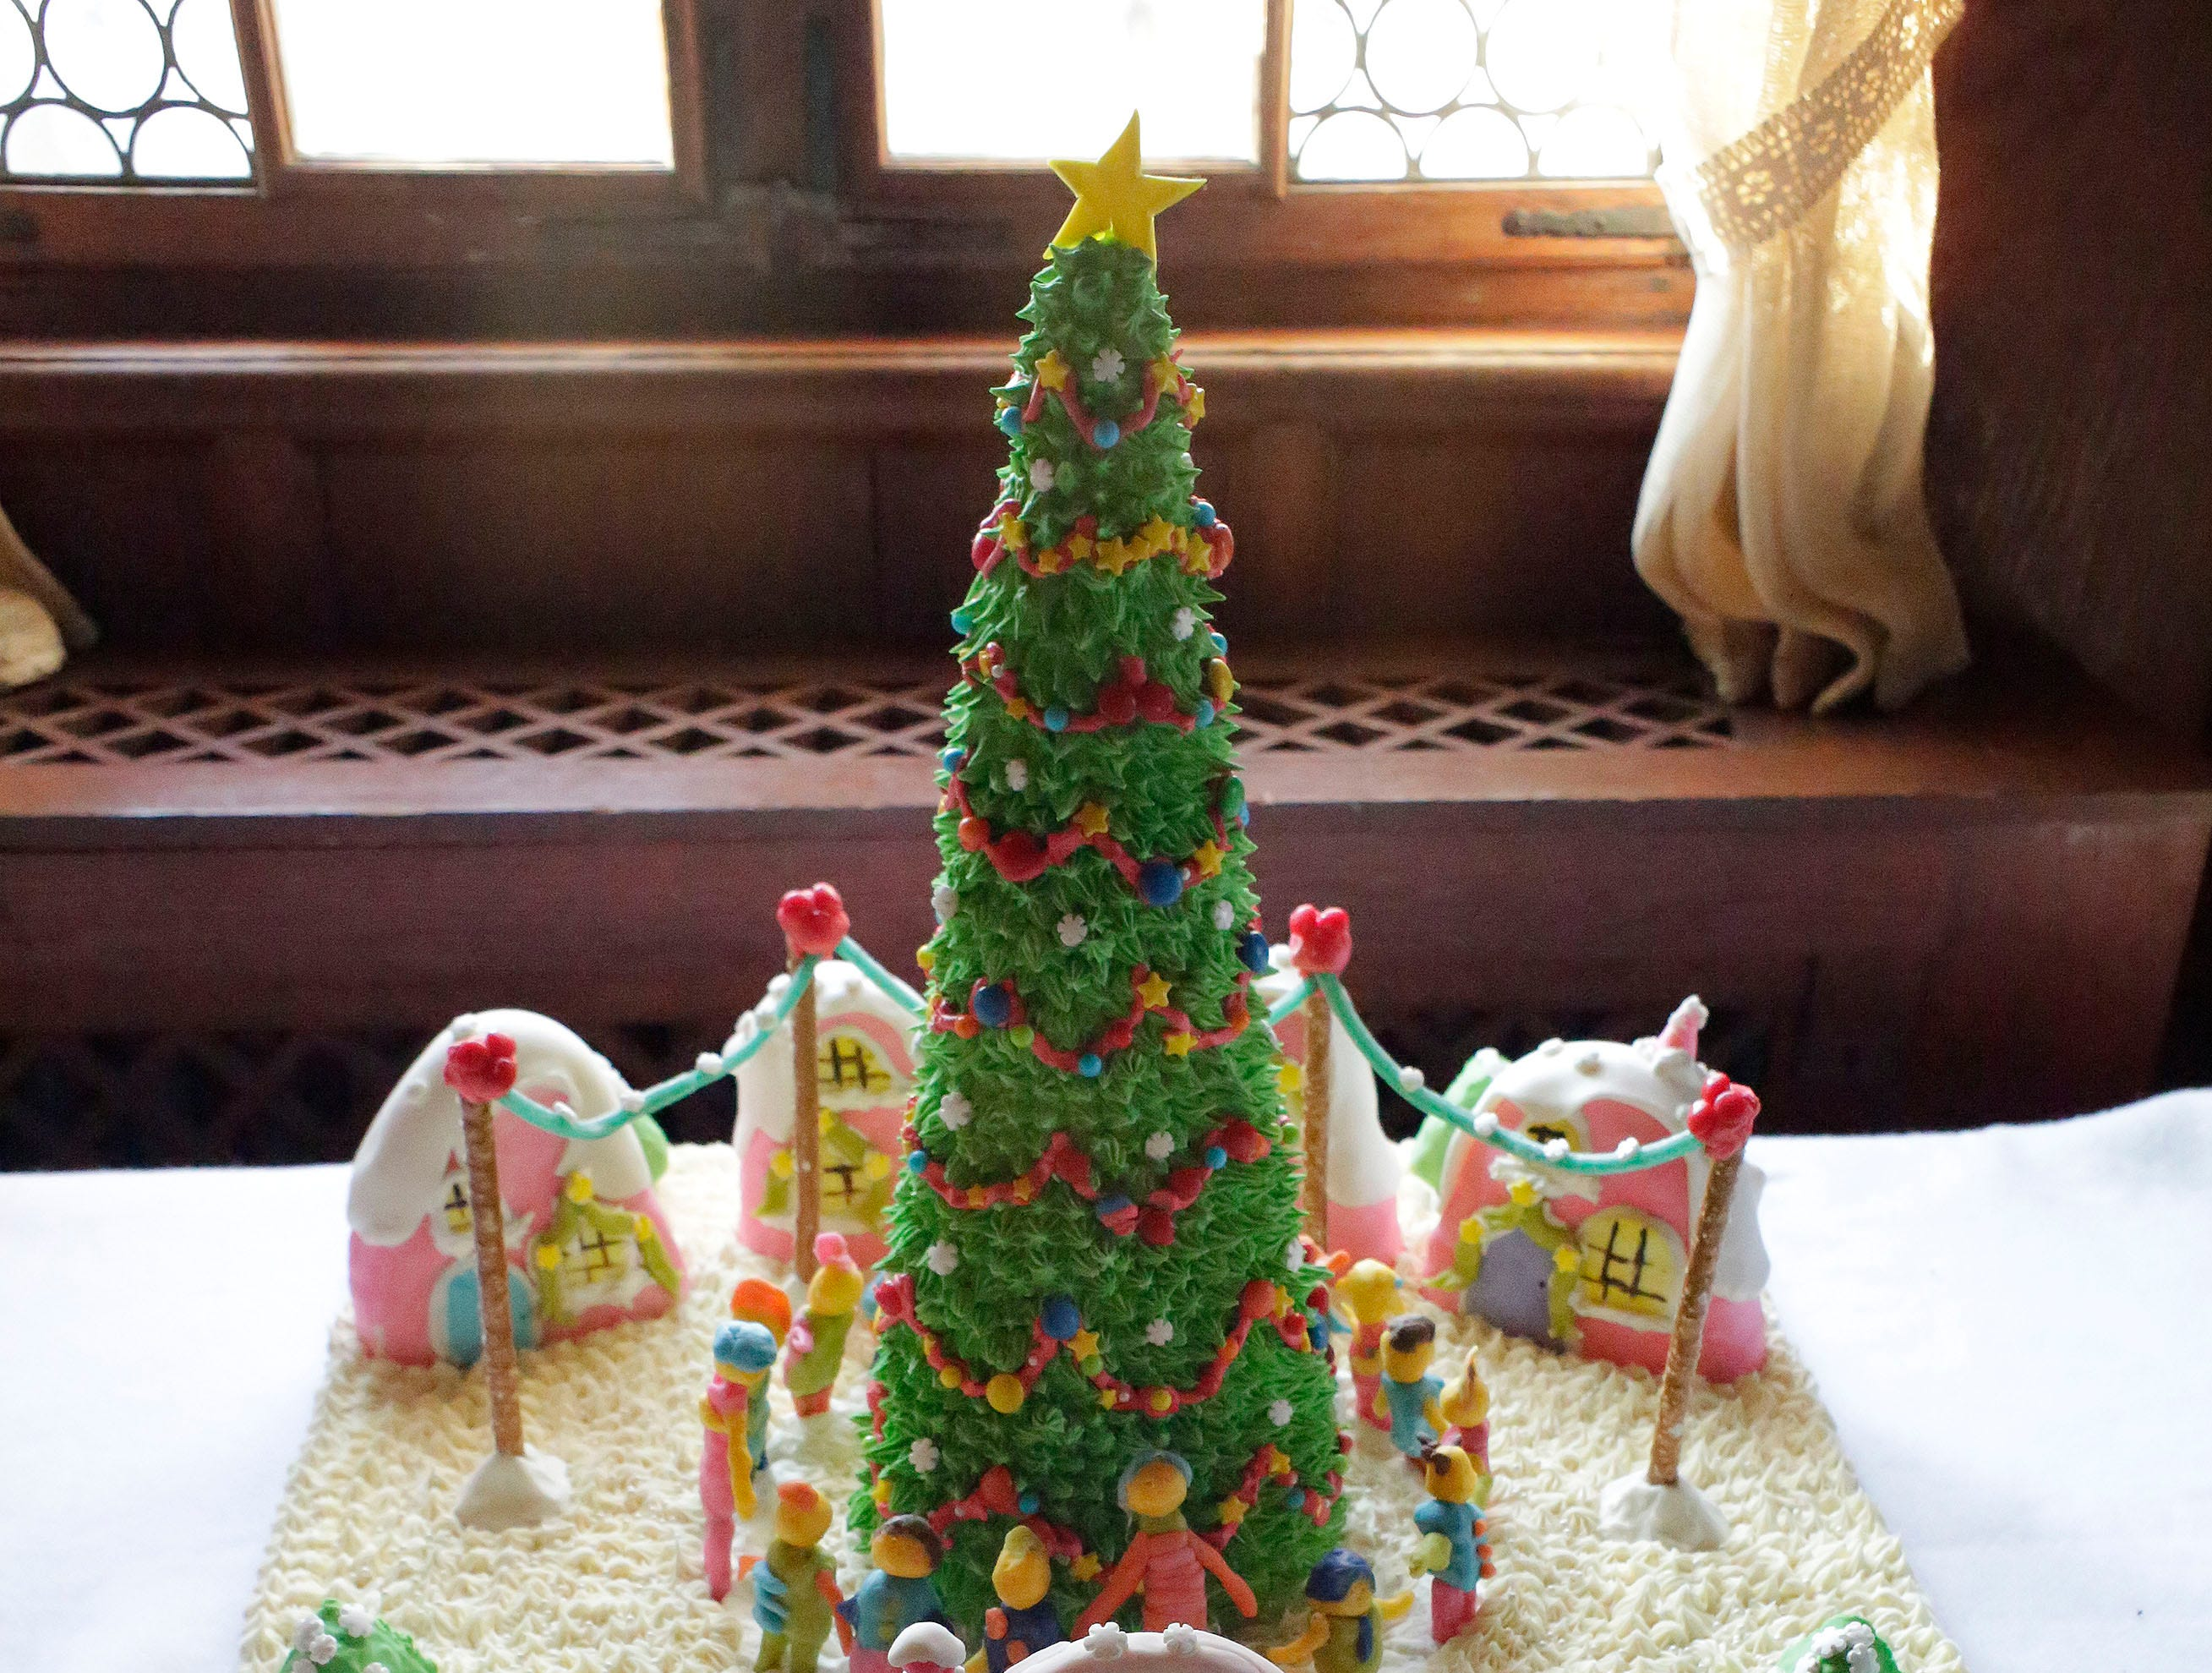 A Whoville Christmas at the annual Waelderhaus Gingerbread Festival, Saturday, December 8, 2018, in Kohler, Wis.